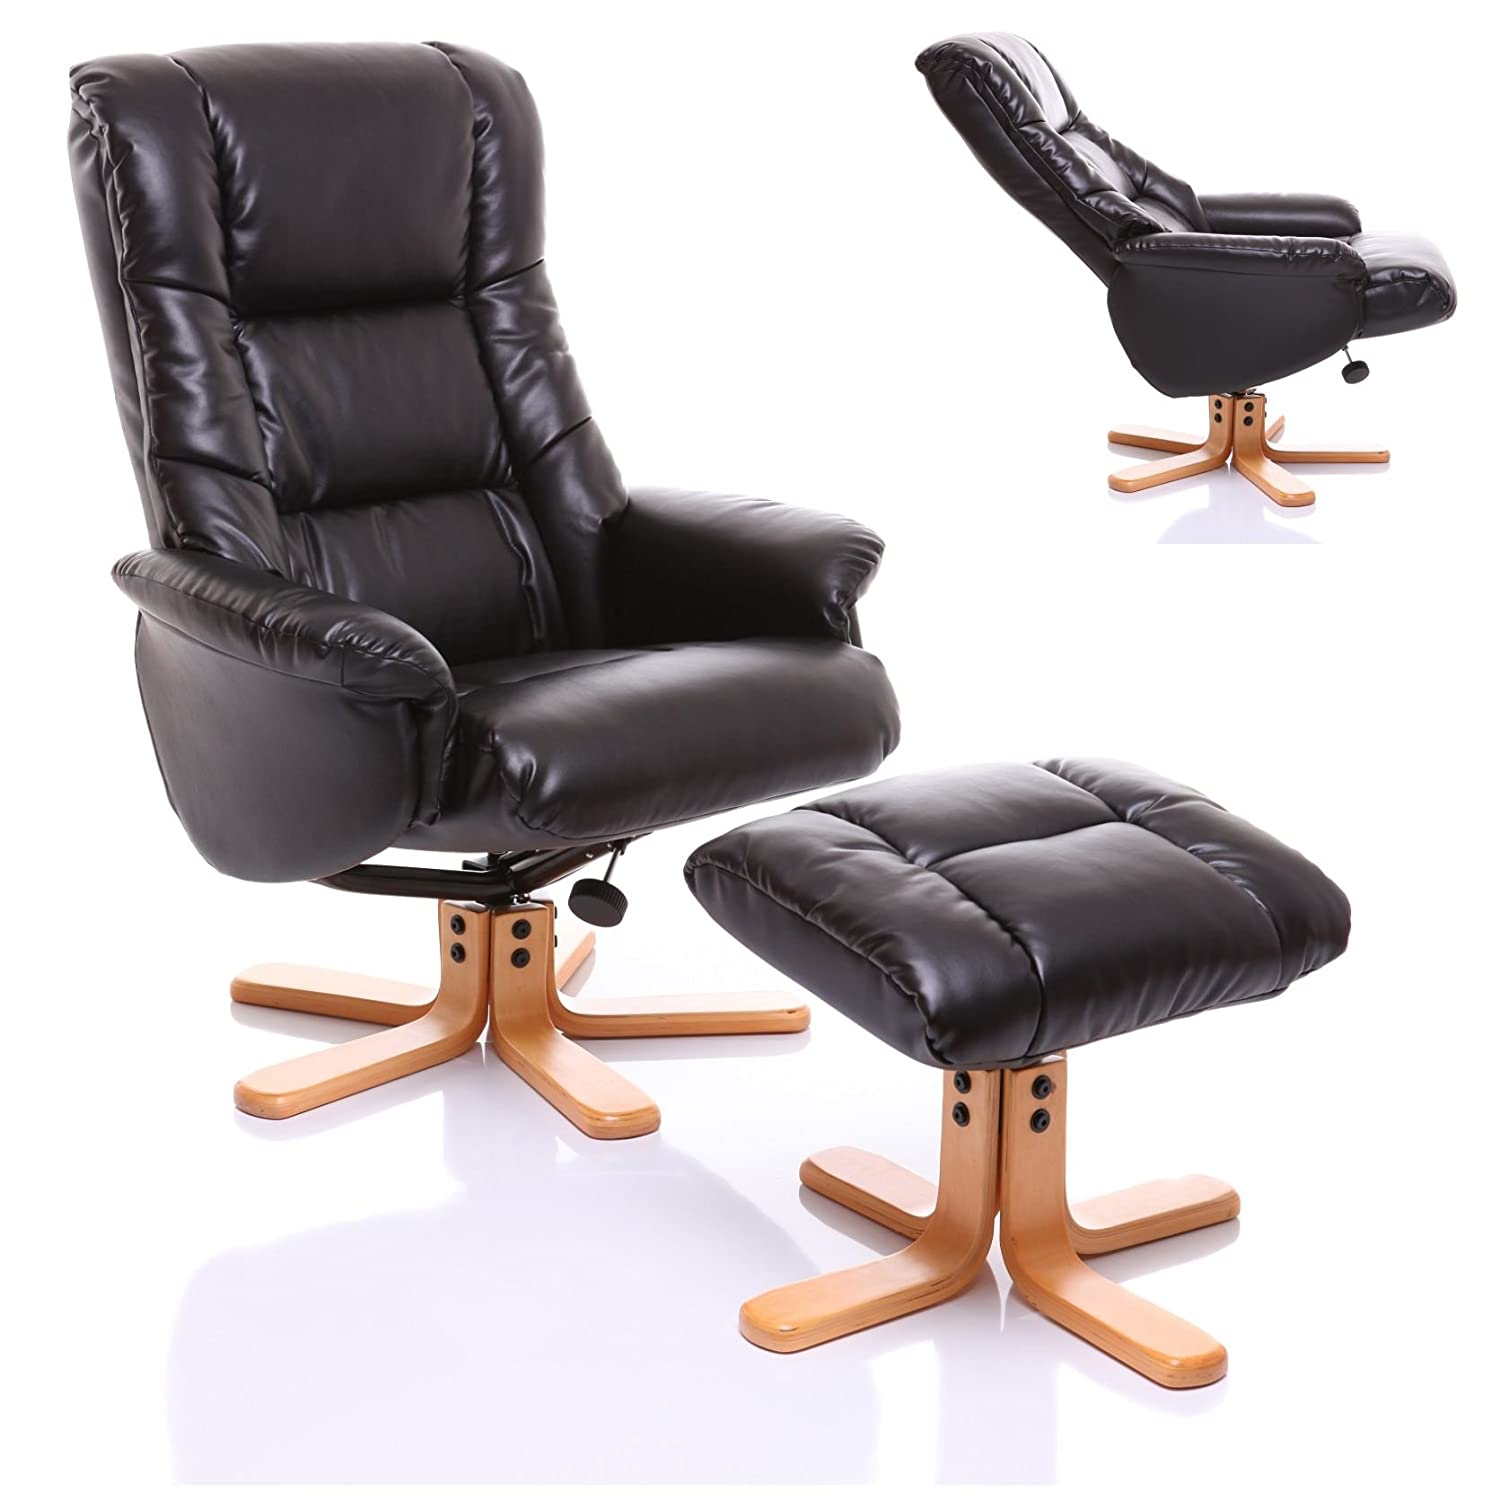 The Shanghai - Bonded Leather Recliner Swivel Chair u0026 Matching Footstool in Black Amazon.co.uk Kitchen u0026 Home  sc 1 st  Amazon UK & The Shanghai - Bonded Leather Recliner Swivel Chair u0026 Matching ... islam-shia.org